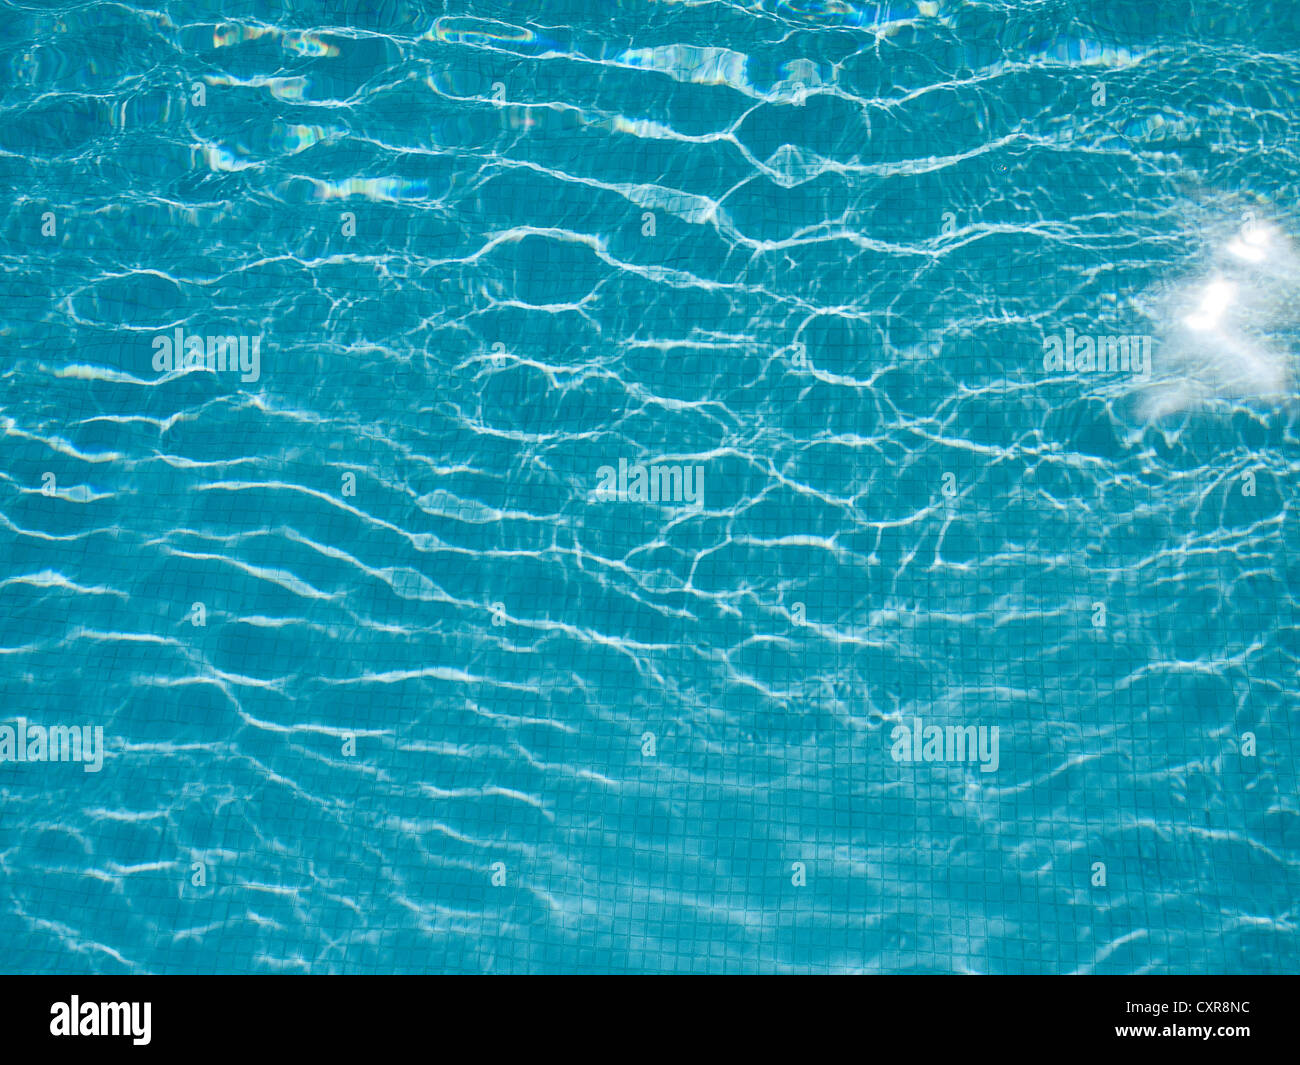 LIGHT REFLECTING ON RIPPLES AND ON WATER IN SWIMMING POOL. - Stock Image